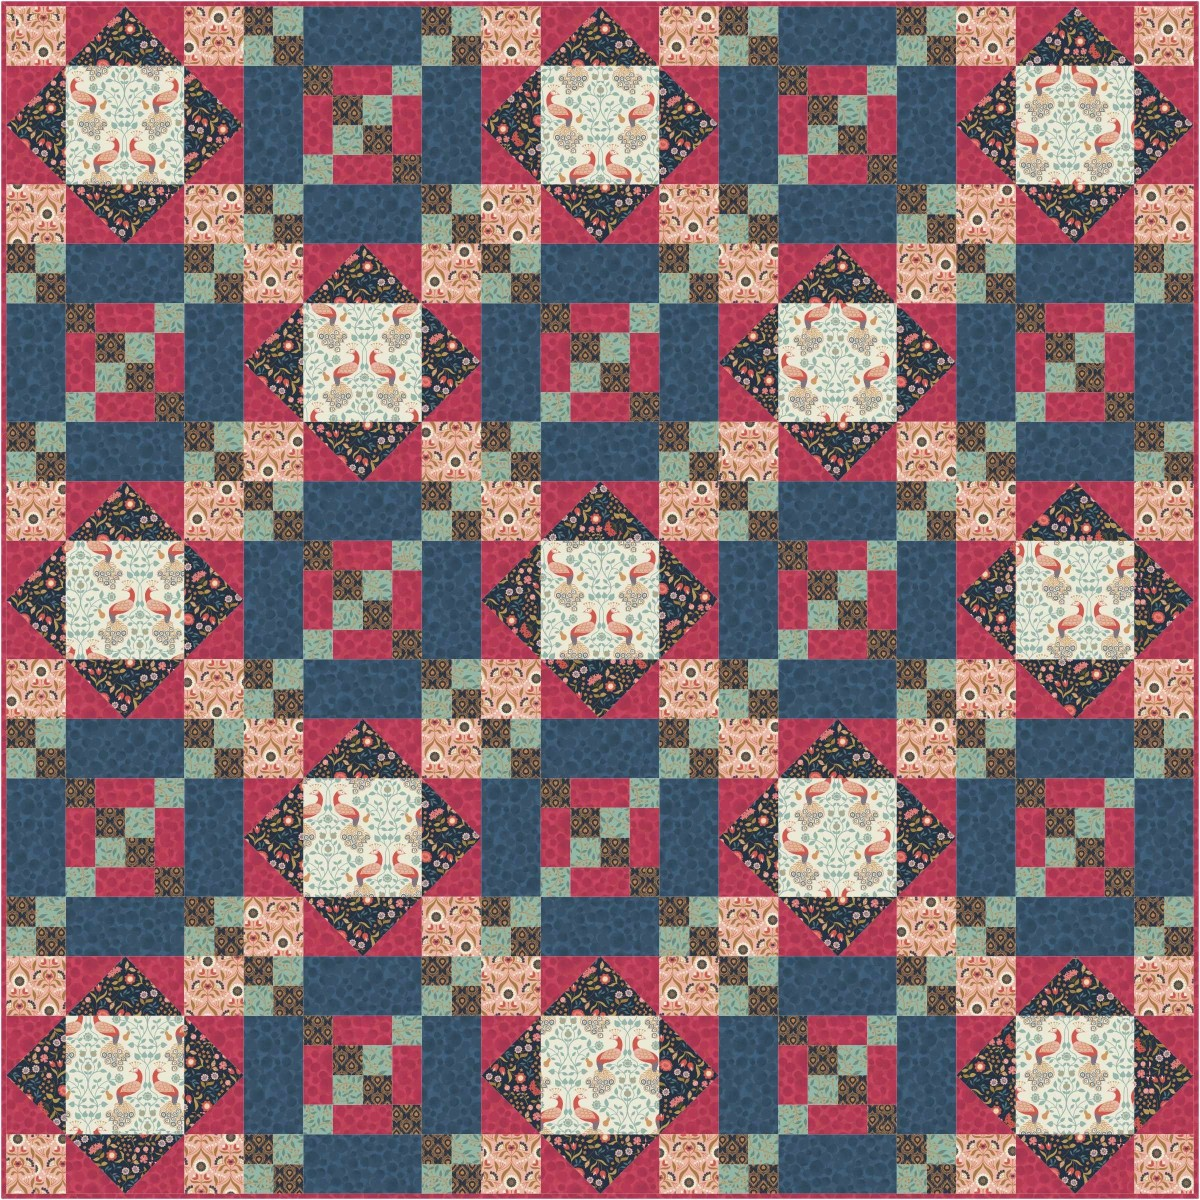 Chieveley Quilt Design 1